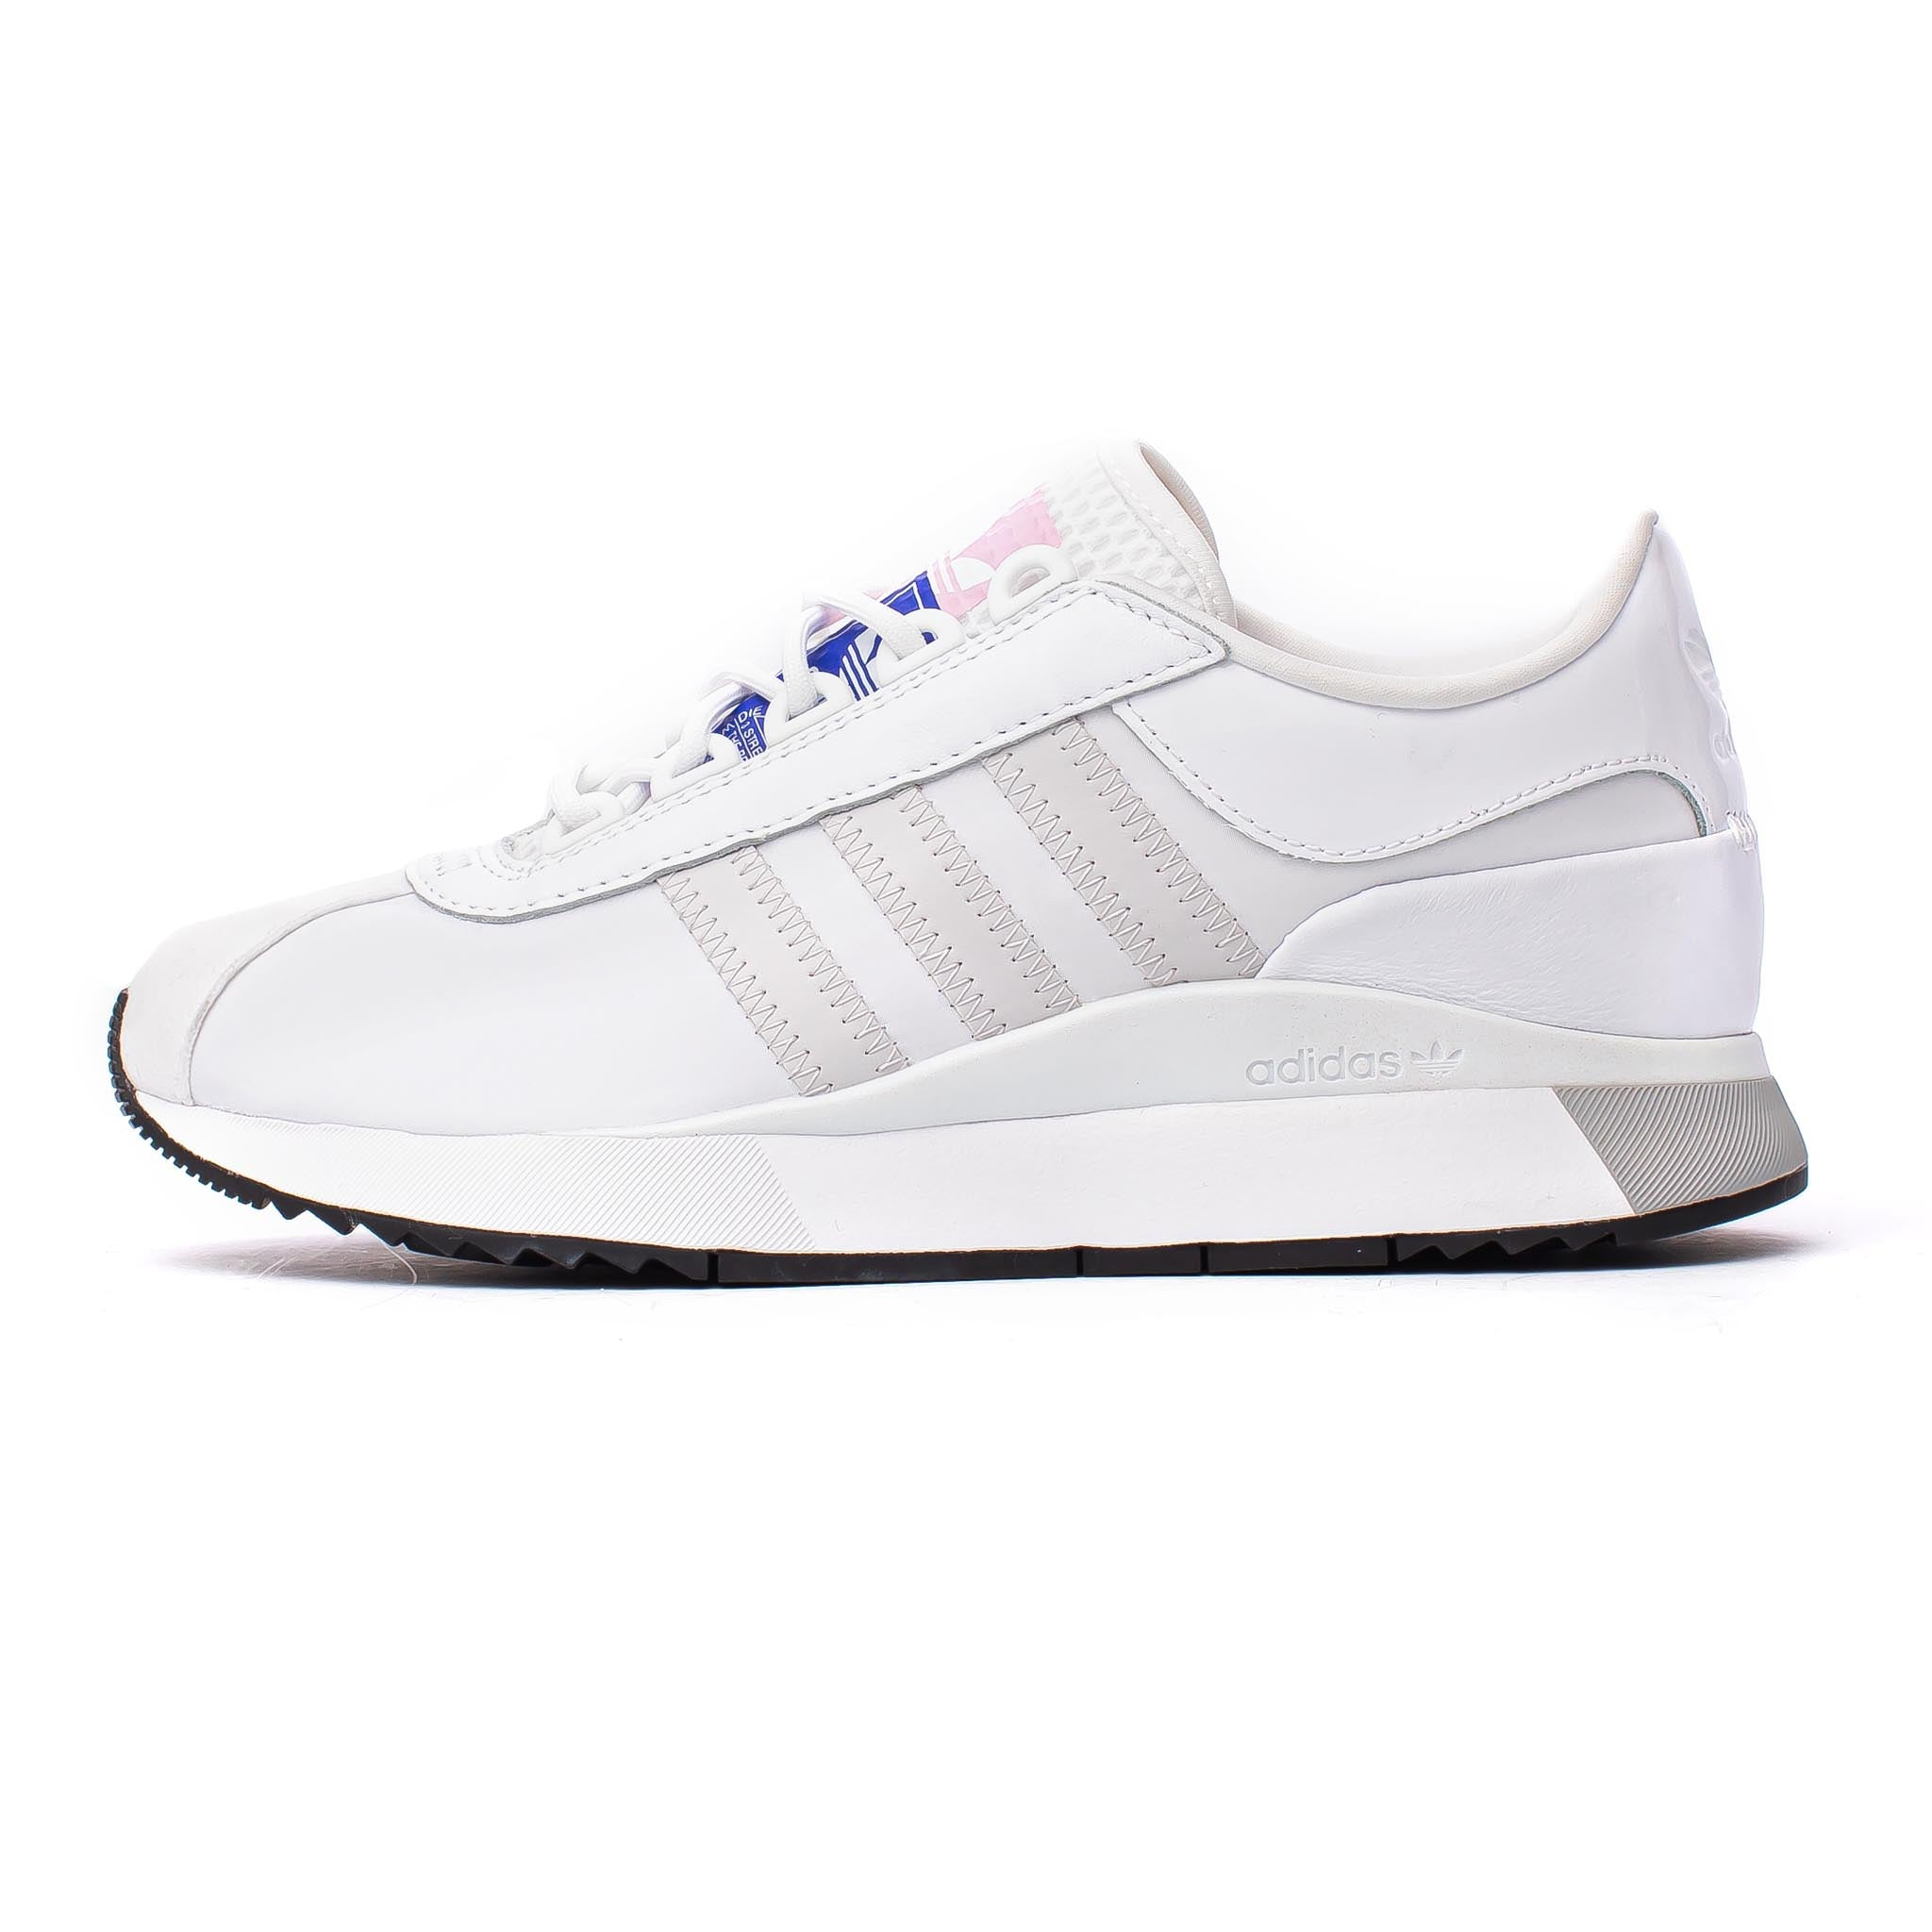 ADIDAS SL Andridge White